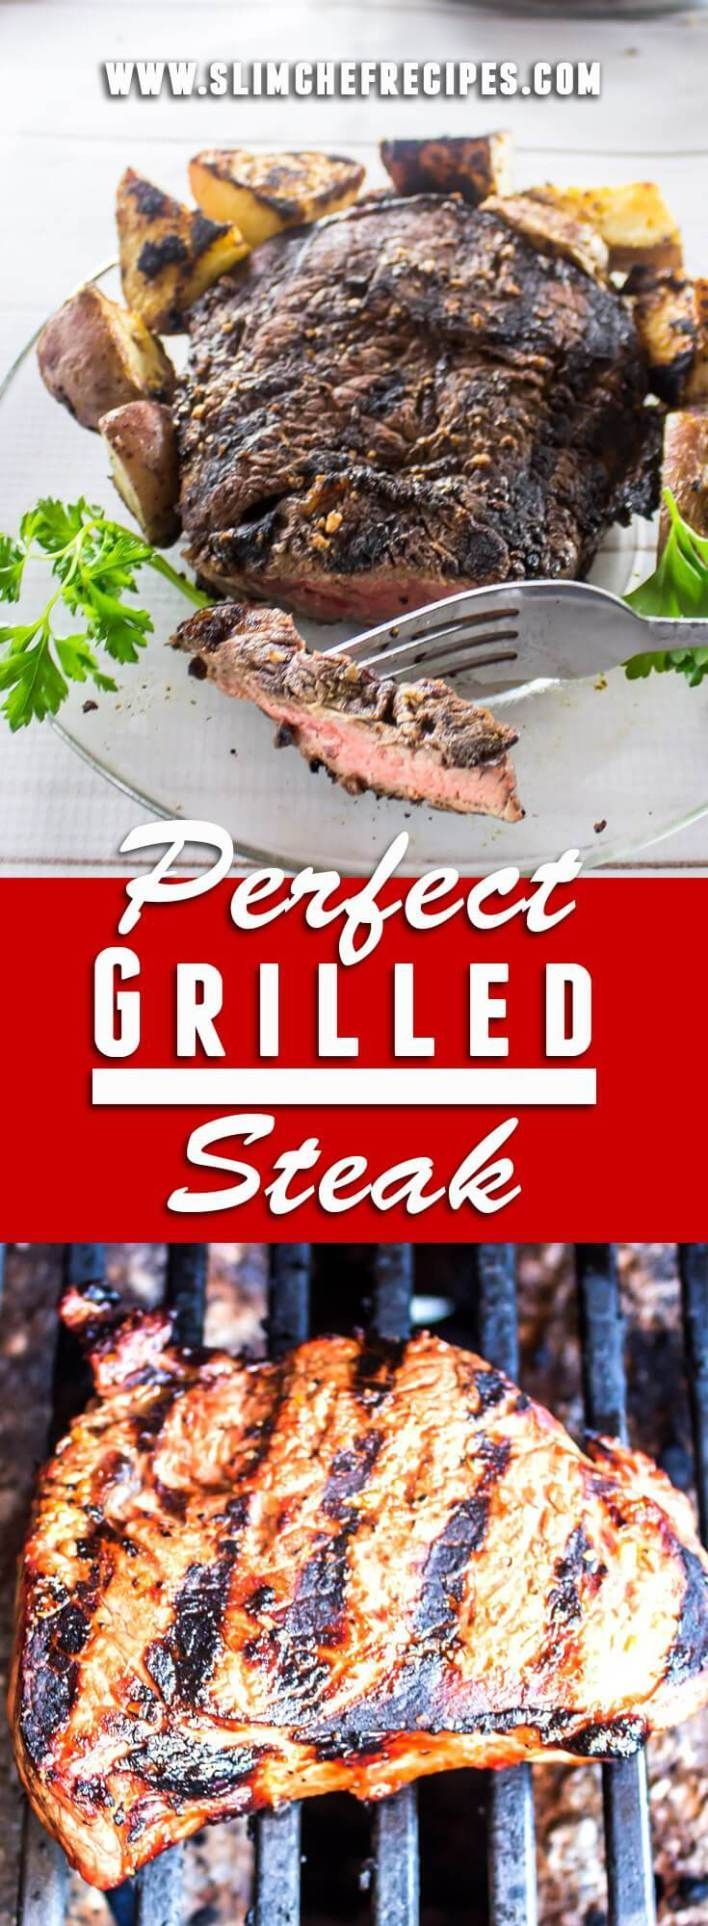 The perfect sirloin or ribeye starts with the best marinade, rub or seasoning. For tender restaurant quality steak, cook over a gas or charcoal grill and skip the oven. Get the temperature hot for beautiful grill marks.@slimchefrecipes.com